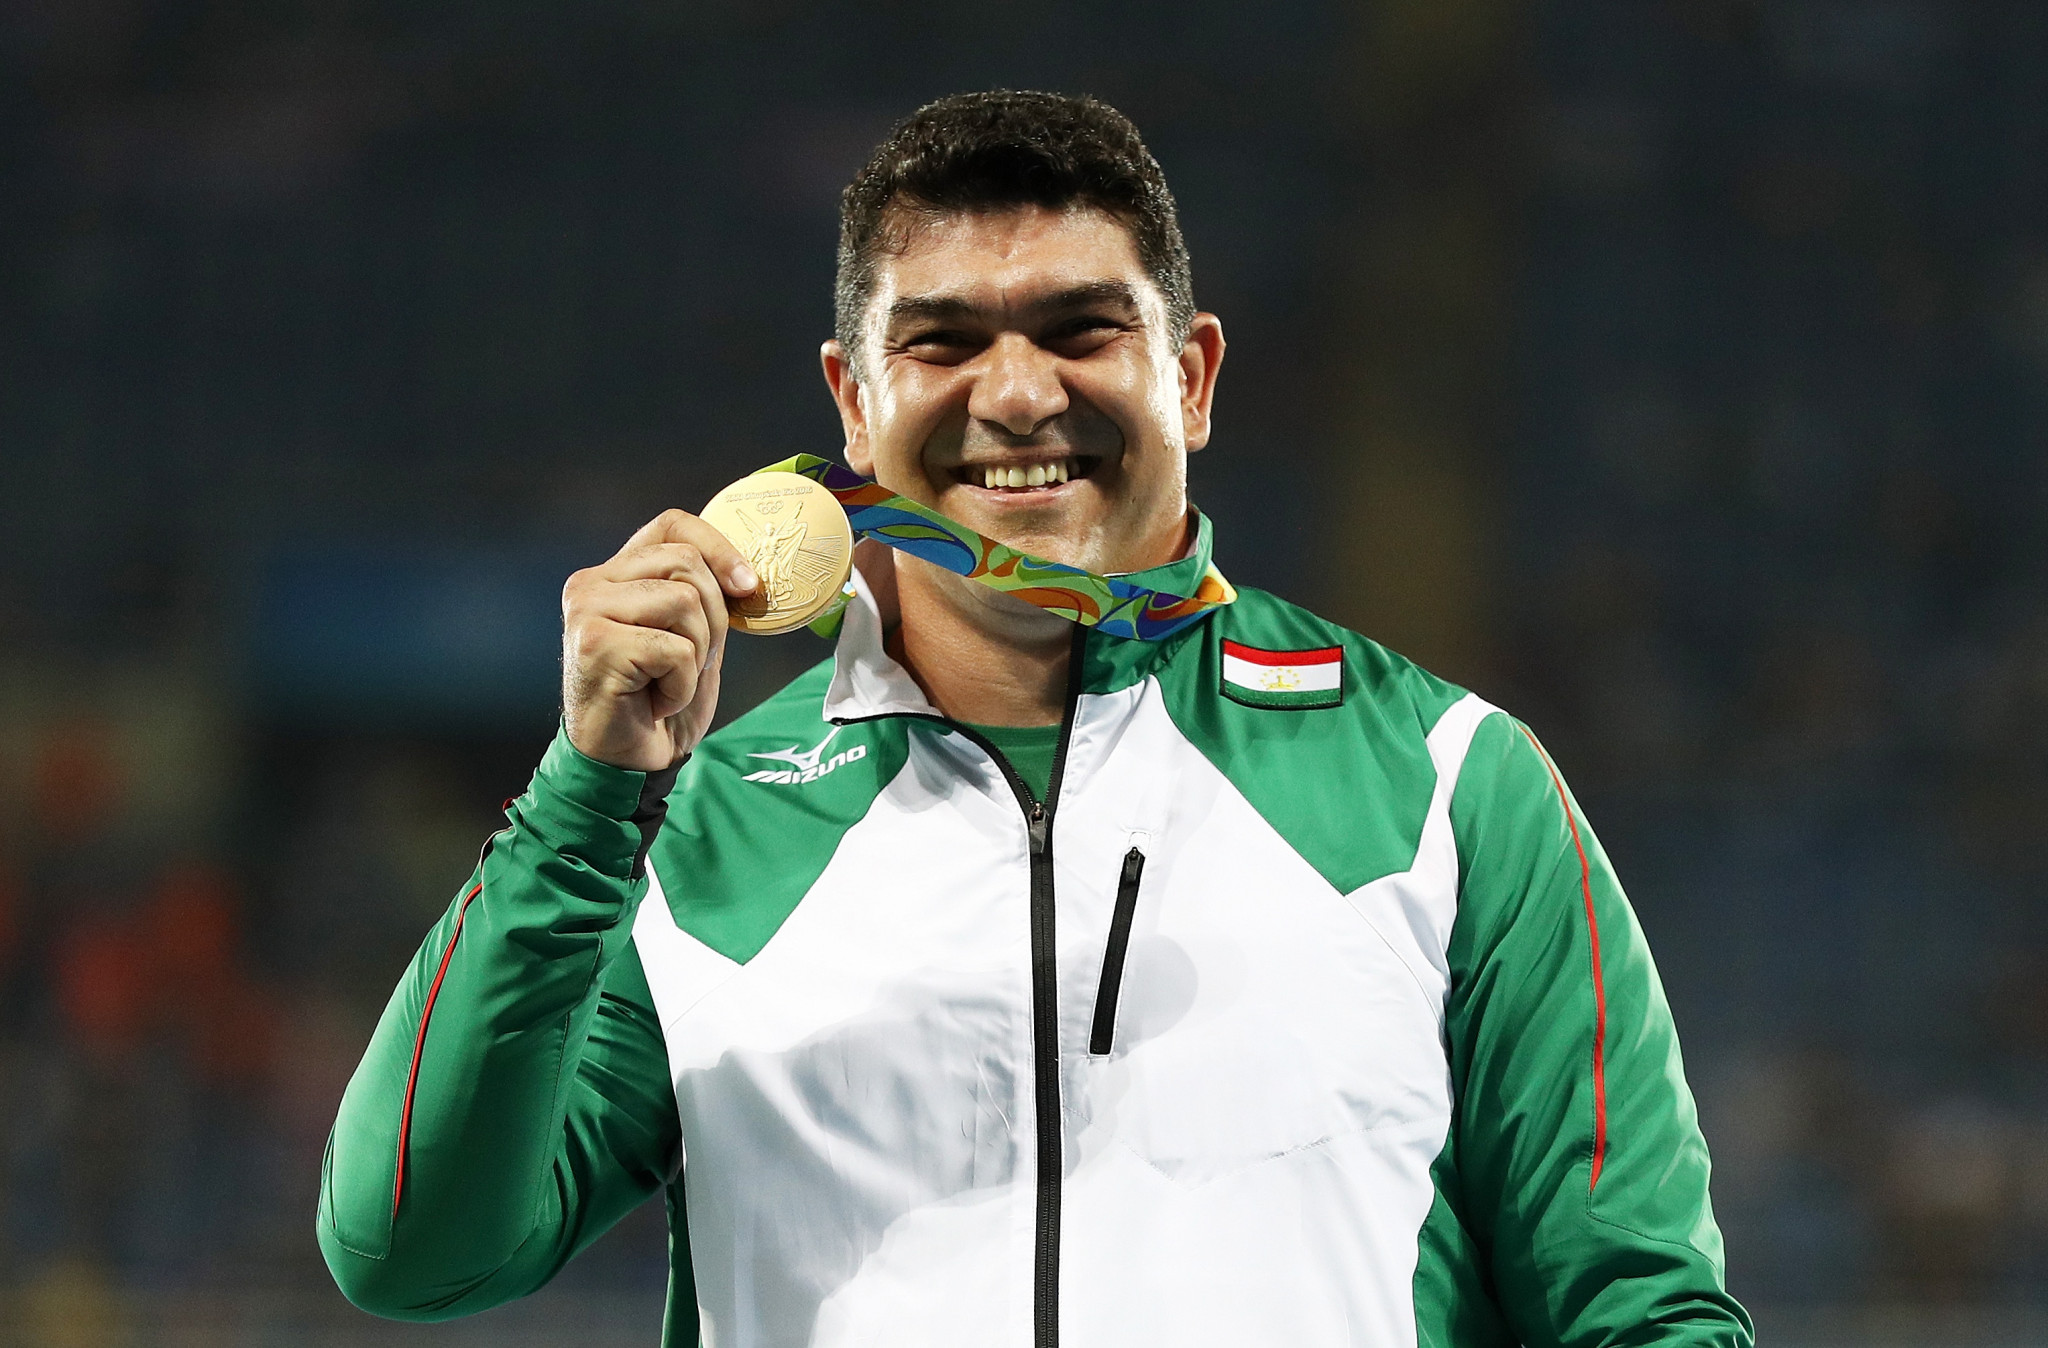 Dilshod Nazarov won Tajikistan's first Olympic gold medal at Rio 2016 ©Getty Images